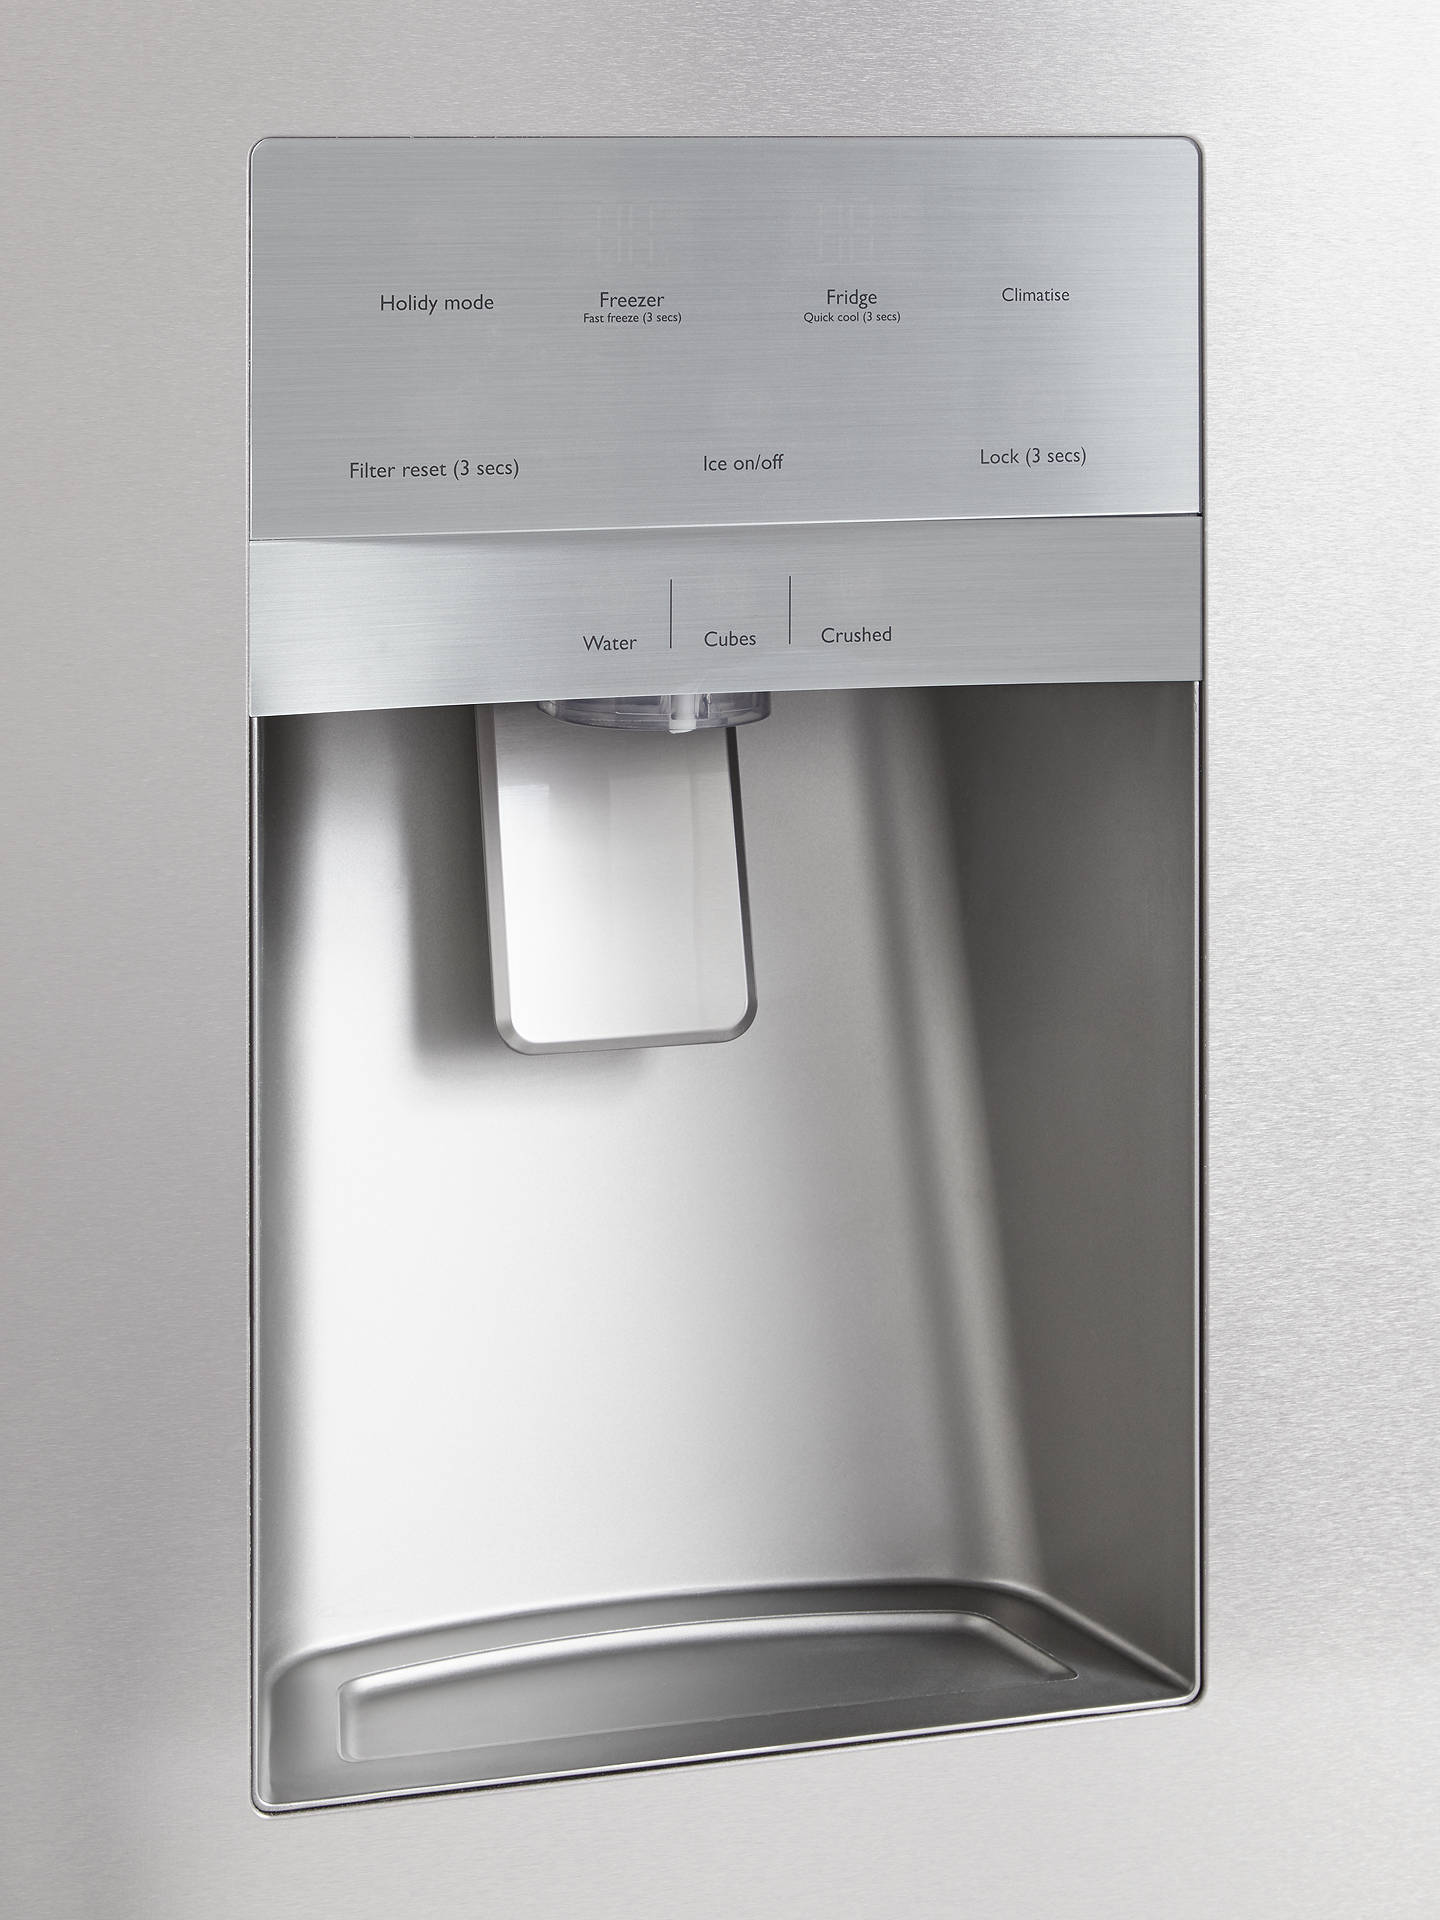 John Lewis & Partners JLAFFSS9018 American-Style Fridge Freezer with Water  & Ice Dispenser, A+ Energy Rating, Silver Stainless Steel